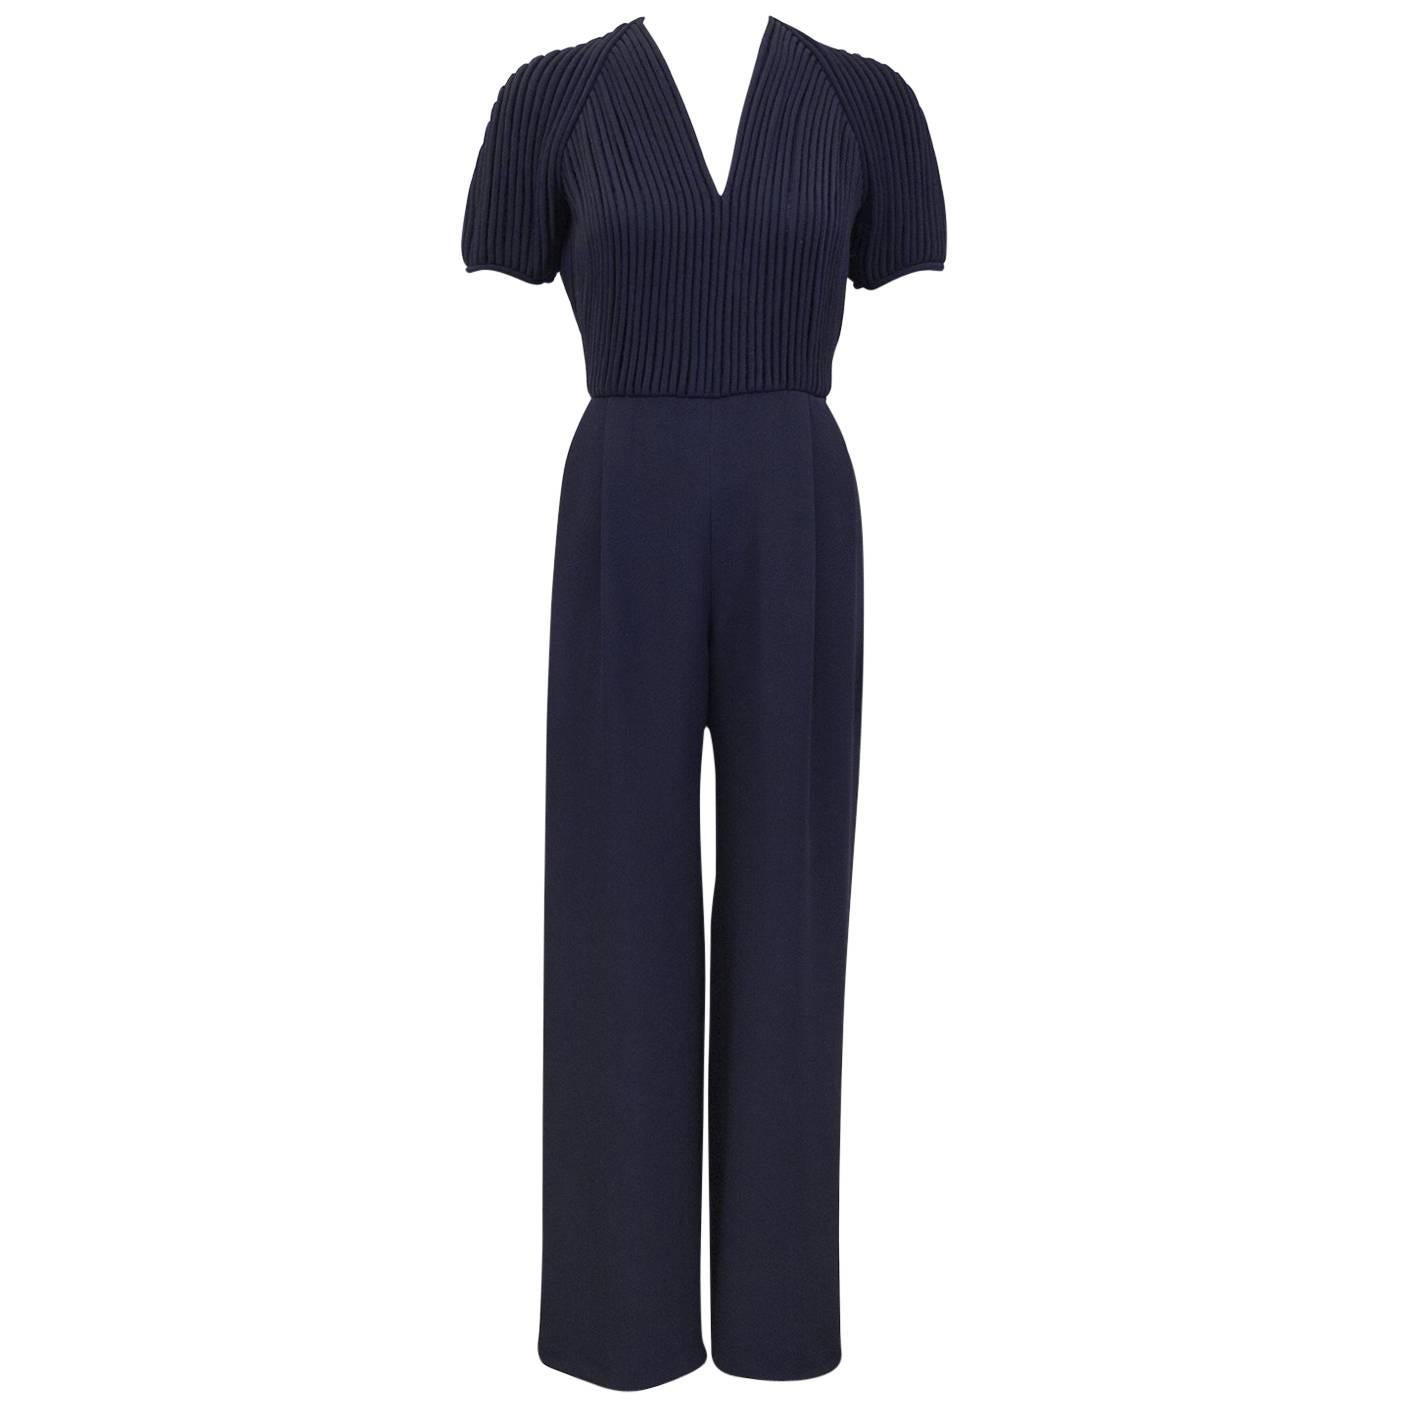 1990's Valentino Couture Navy Blue Jumpsuit